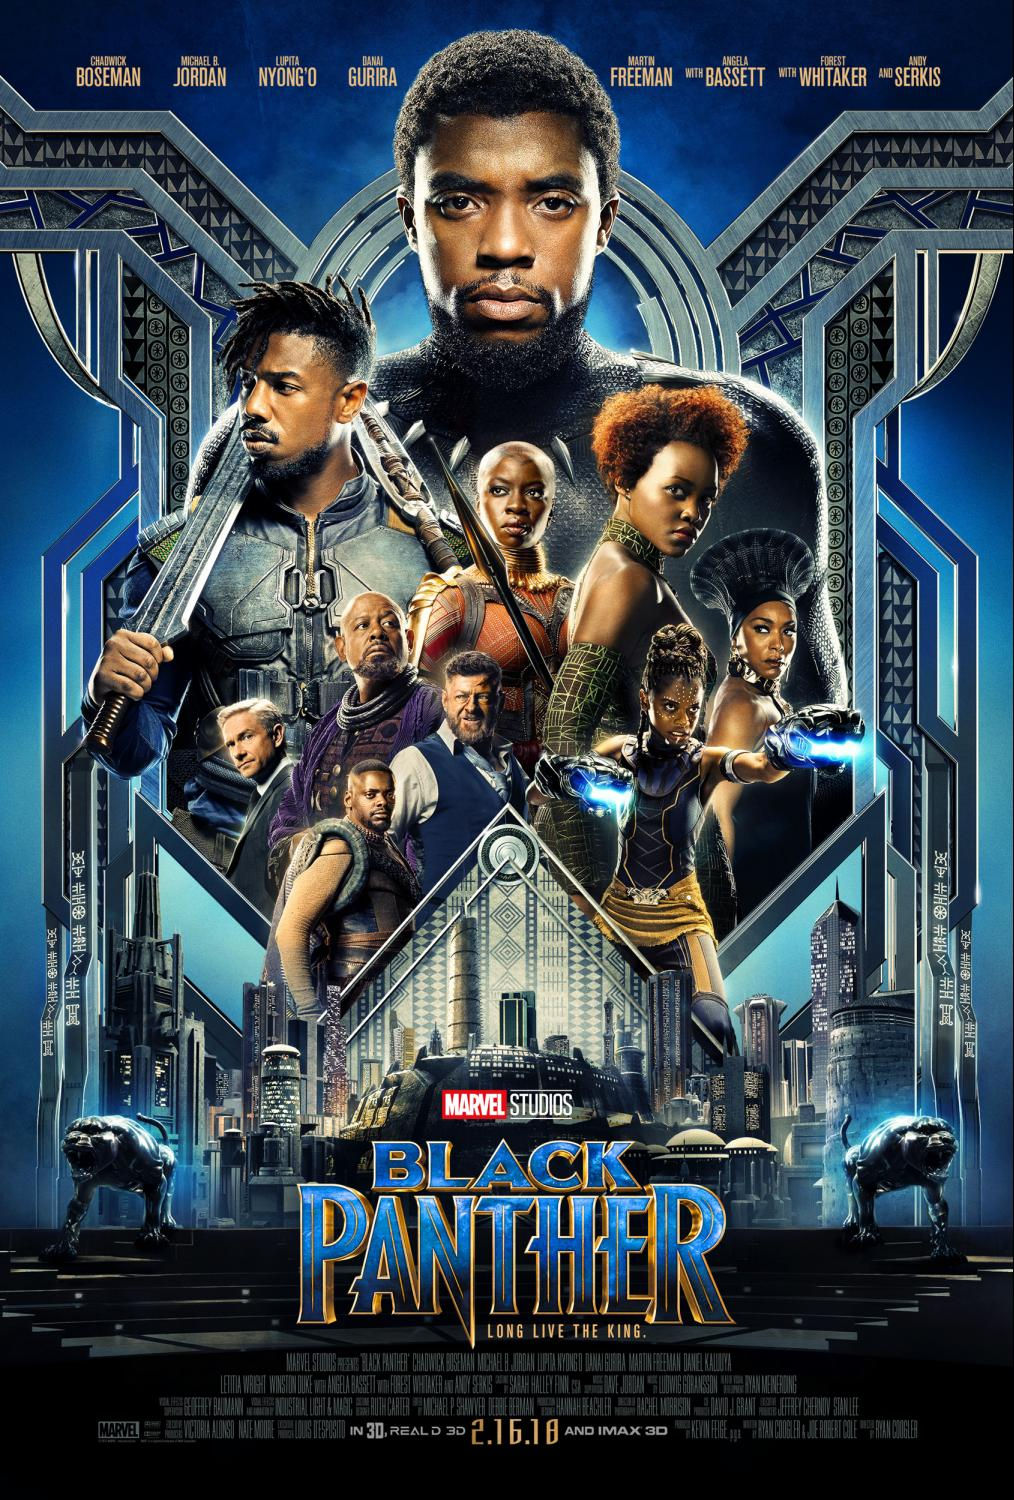 Black panther press junket salute to all things disney but mostly blackpanther59f24429d2605g ccuart Image collections